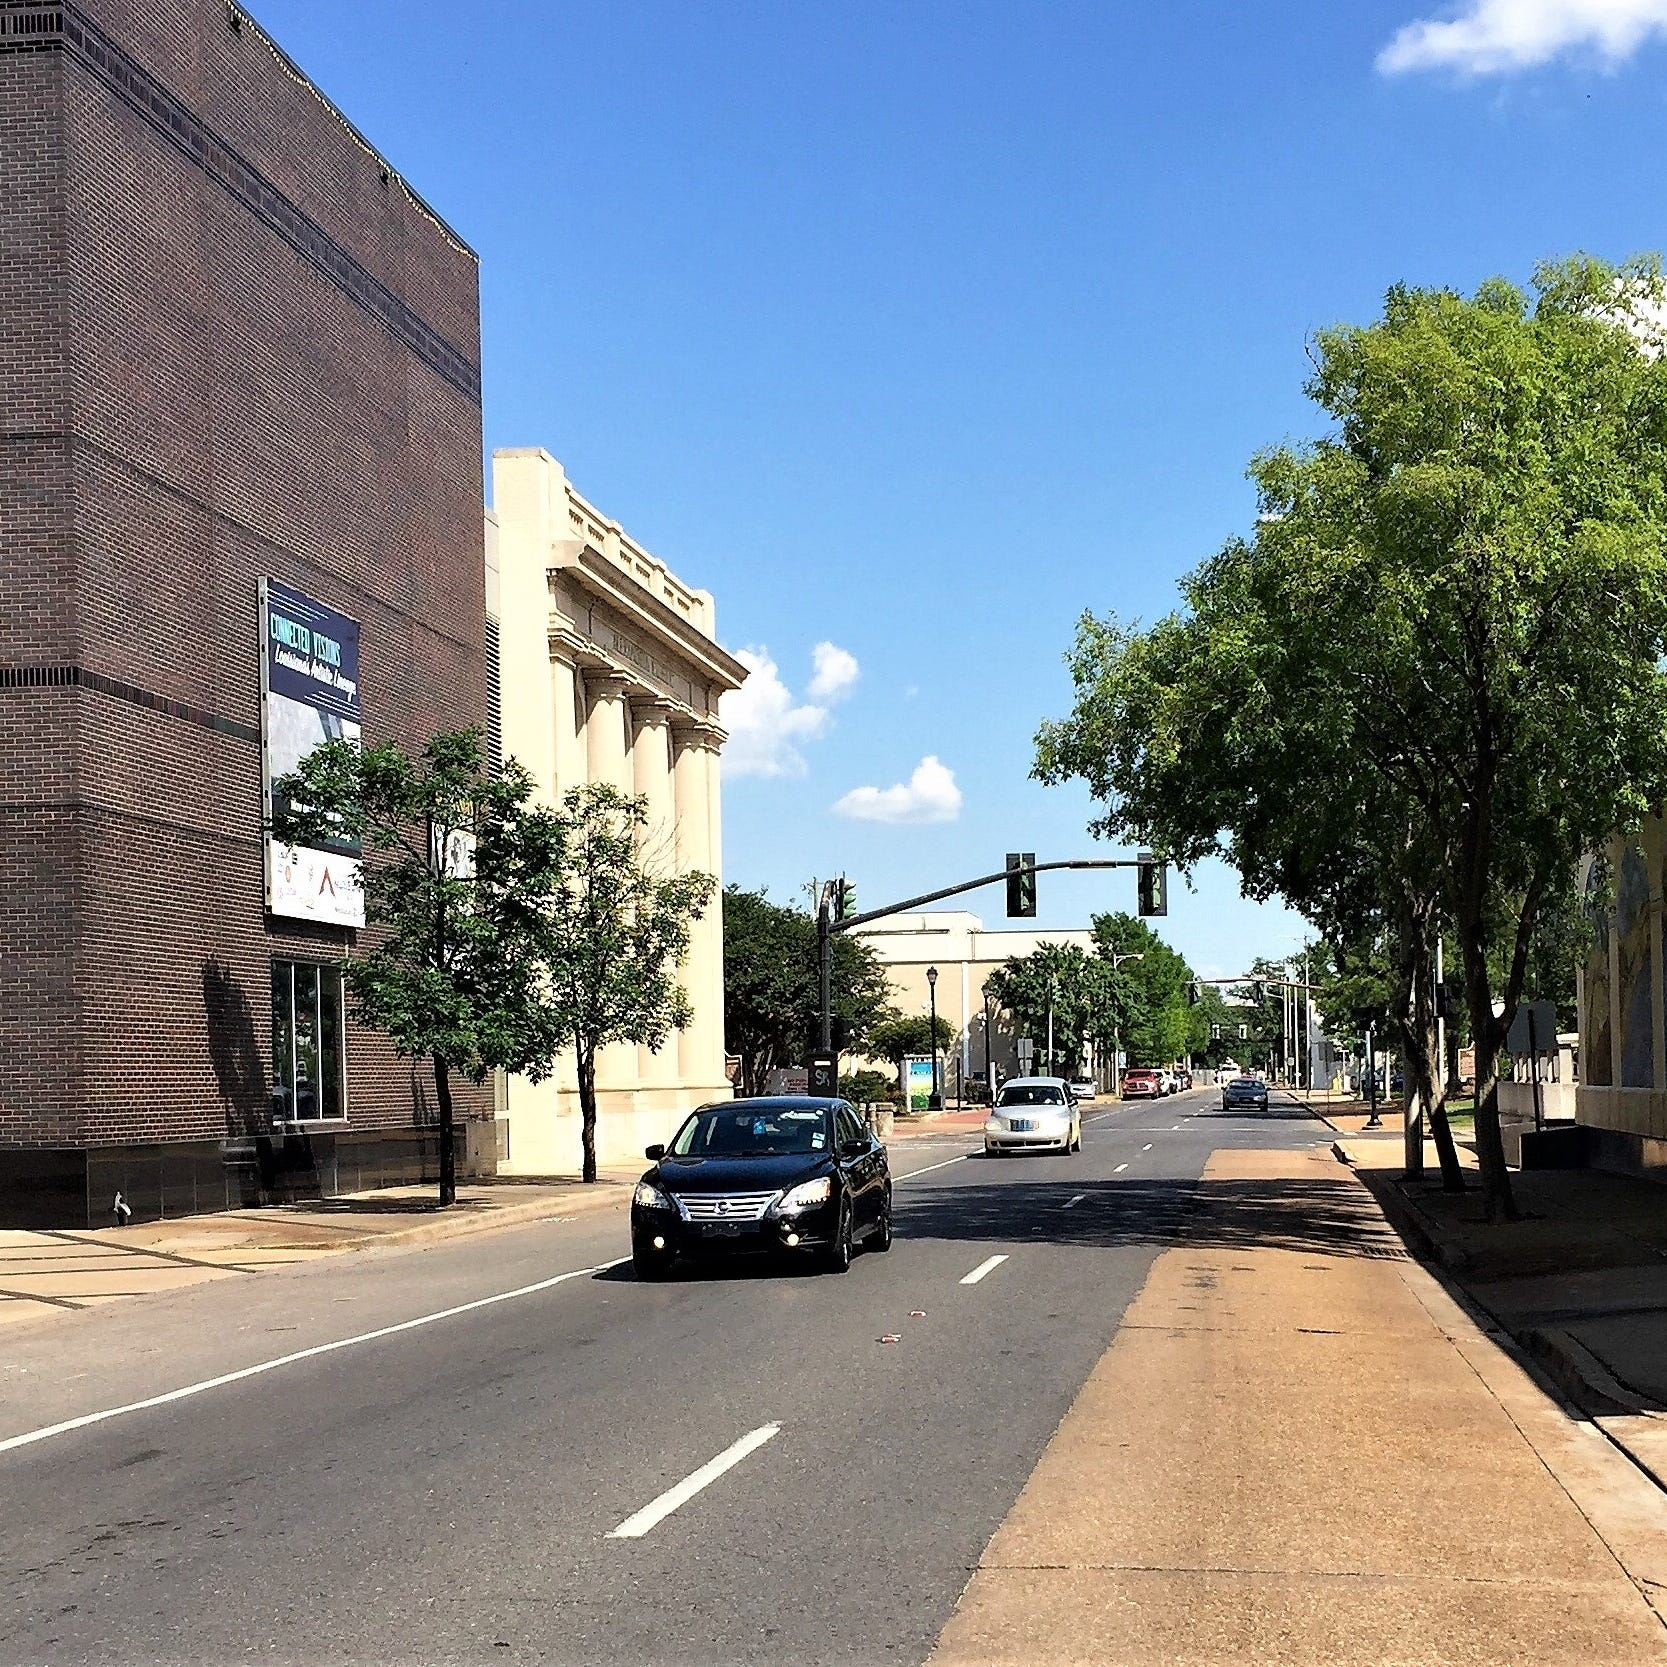 See how downtown streets will be reconfigured